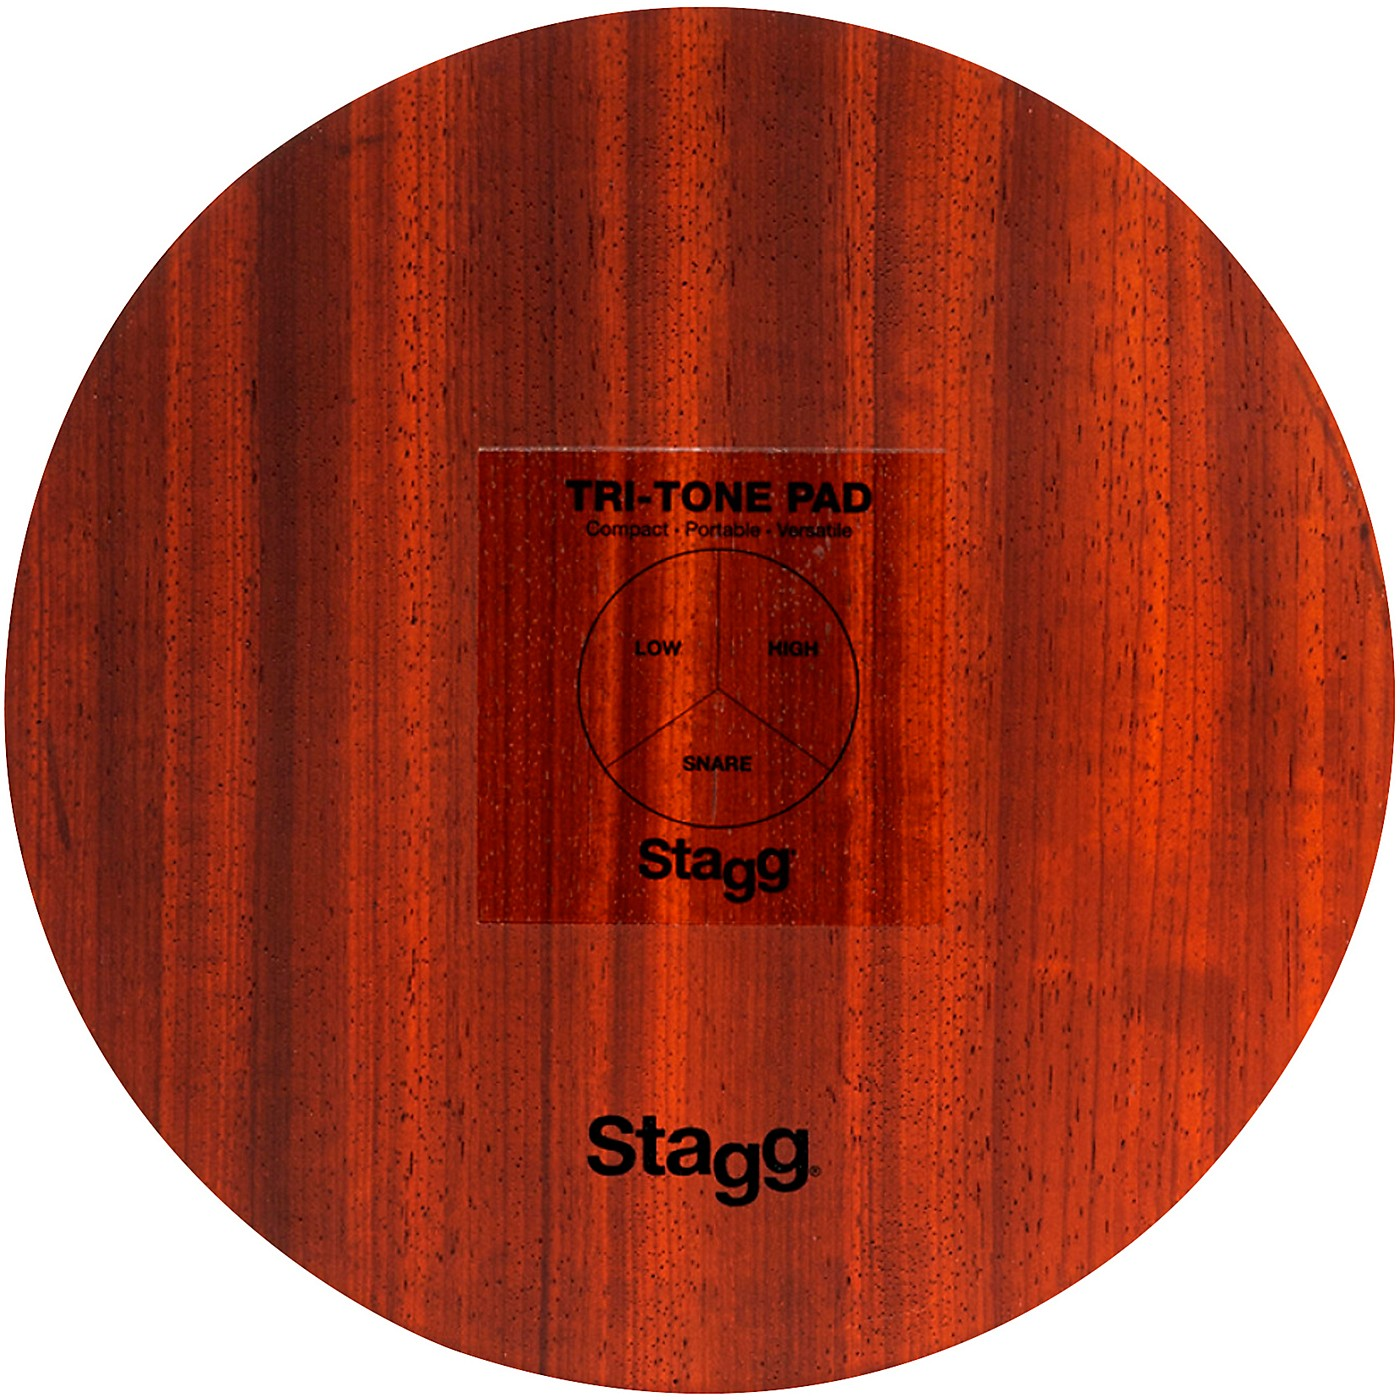 Stagg Multi-Zone Tri-Tone Pad with Bag thumbnail